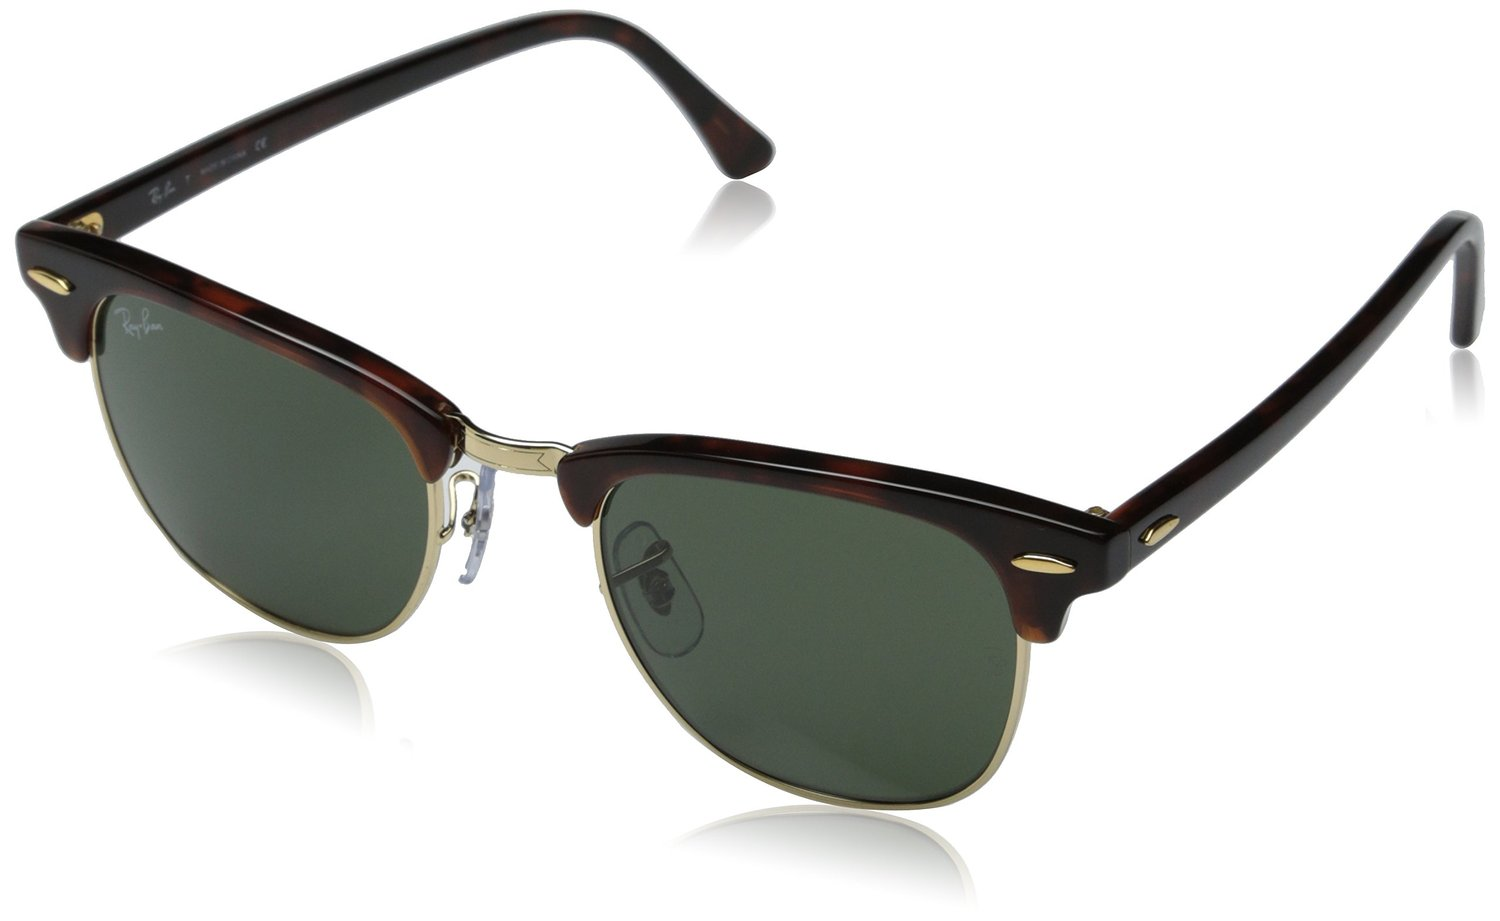 rb3016 sunglasses  com: Ray-Ban RB3016 Classic Clubmaster Sunglasses, Non-Polarized ...